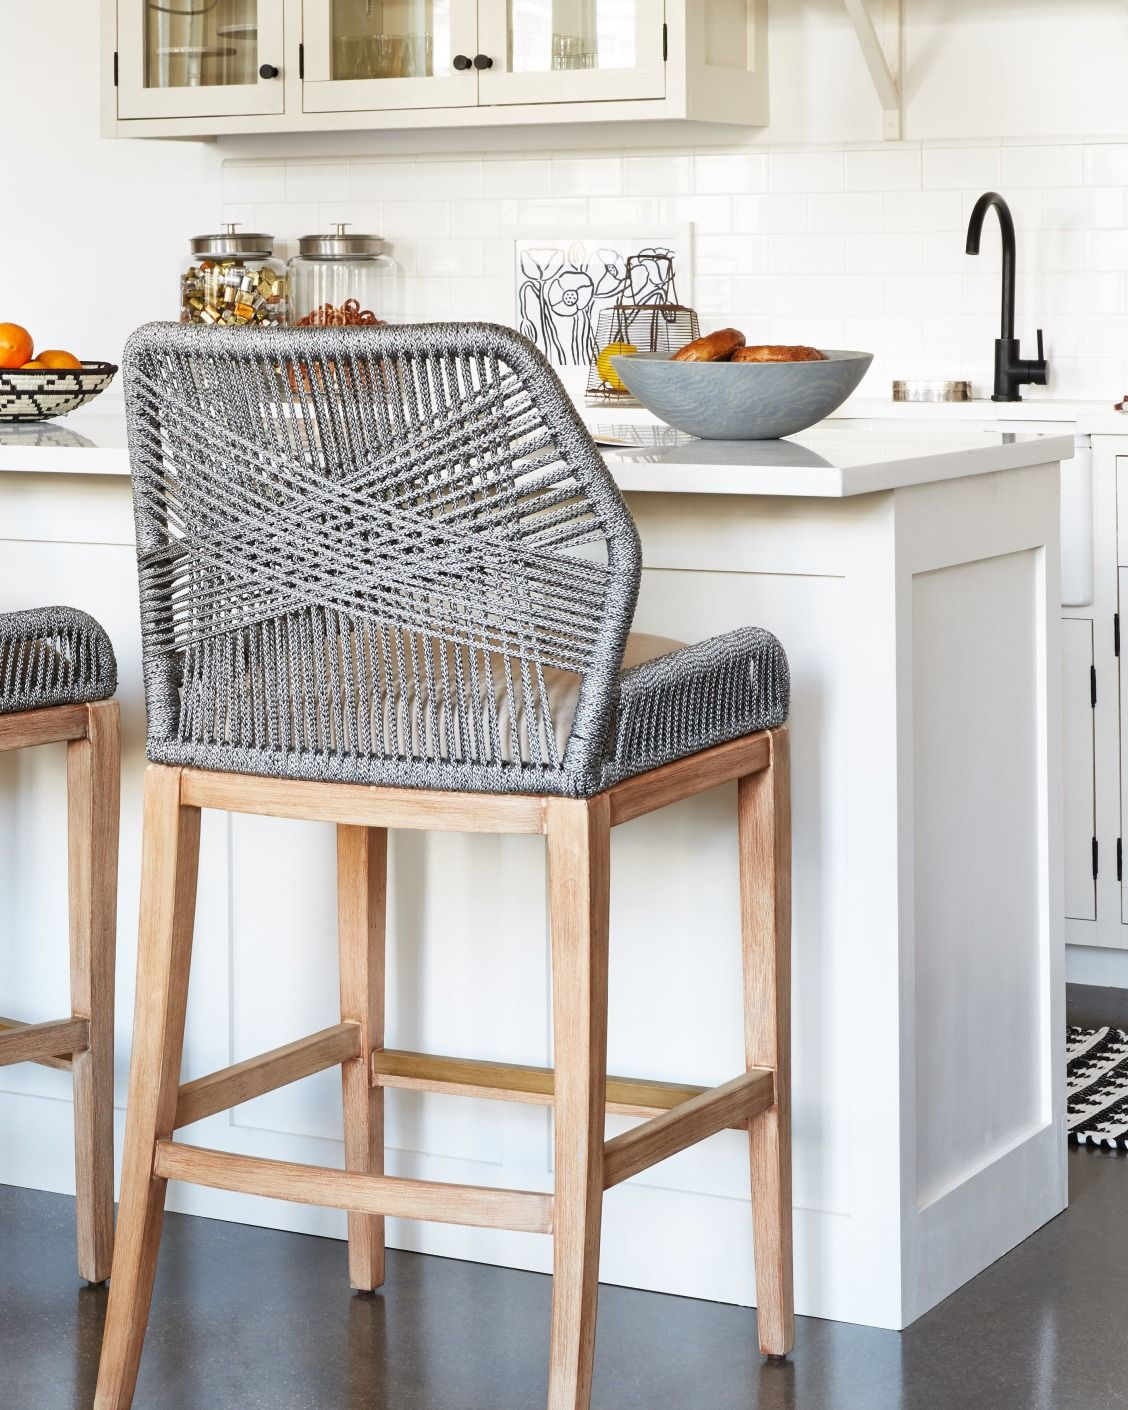 These Woven Rope Counter Stools Are Such A Fun Unexpected Kitchen Accent Kitchen Bar Stools Stools For Kitchen Island Kitchen Stools